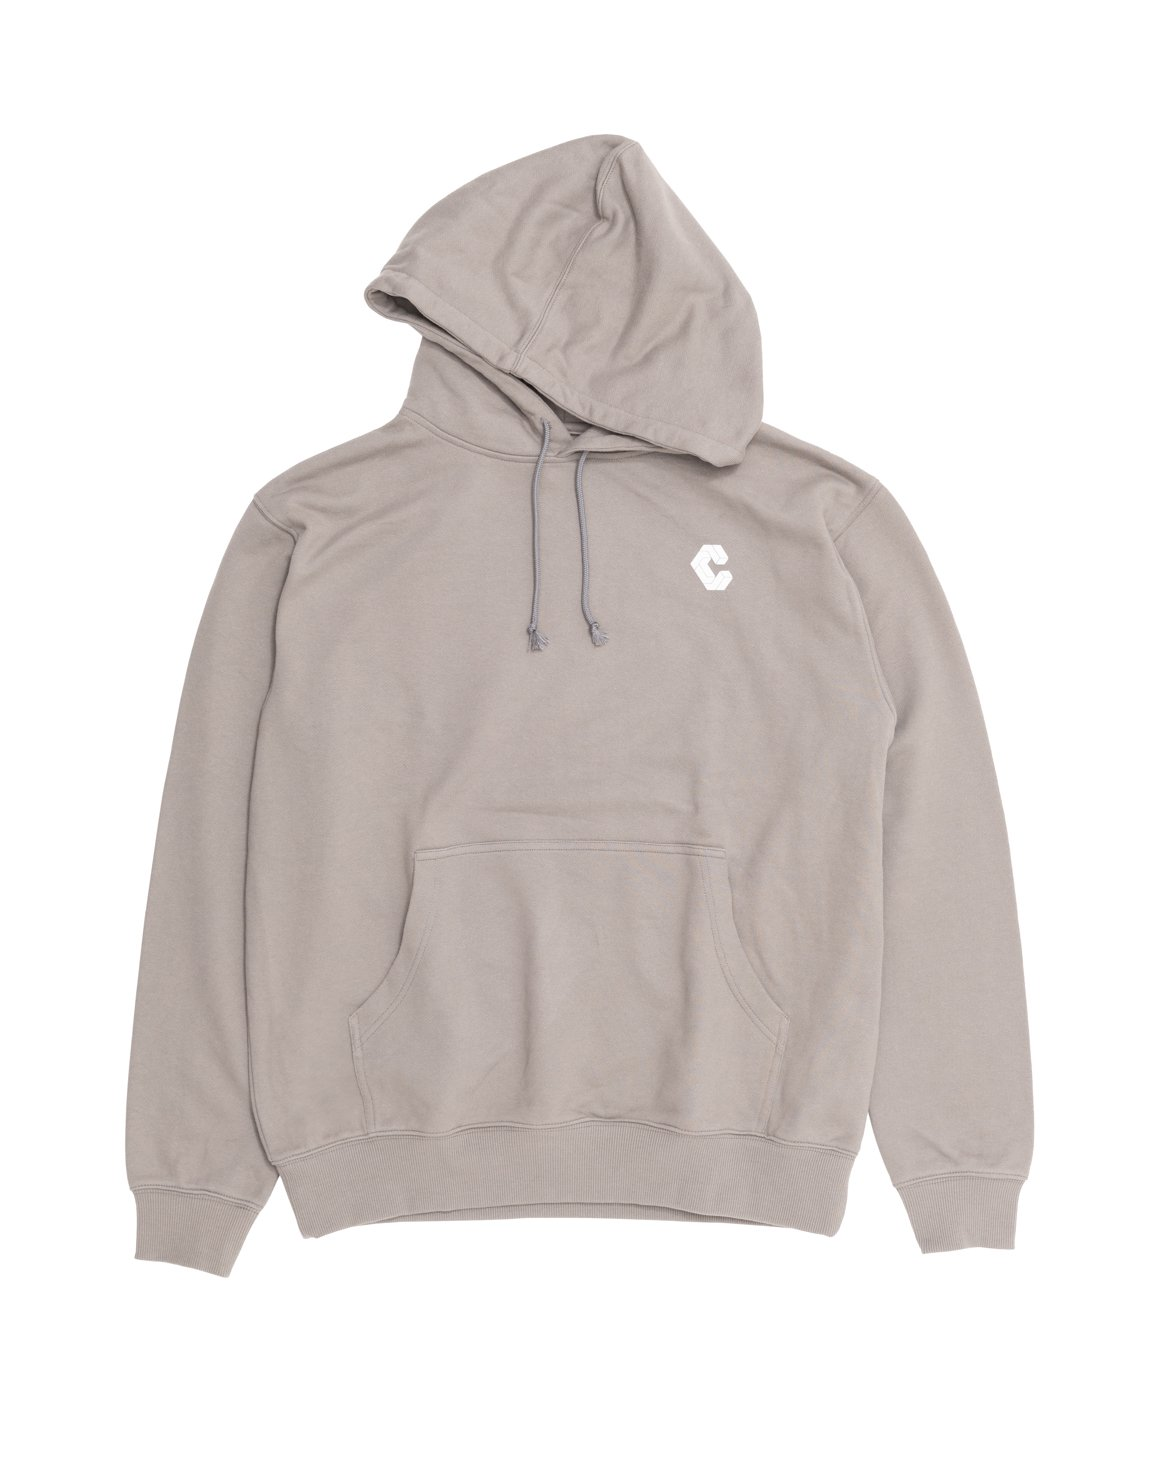 <img class='new_mark_img1' src='https://img.shop-pro.jp/img/new/icons1.gif' style='border:none;display:inline;margin:0px;padding:0px;width:auto;' />CRONOS GUESS THE NUMBERS  PARKA 【GRAY】